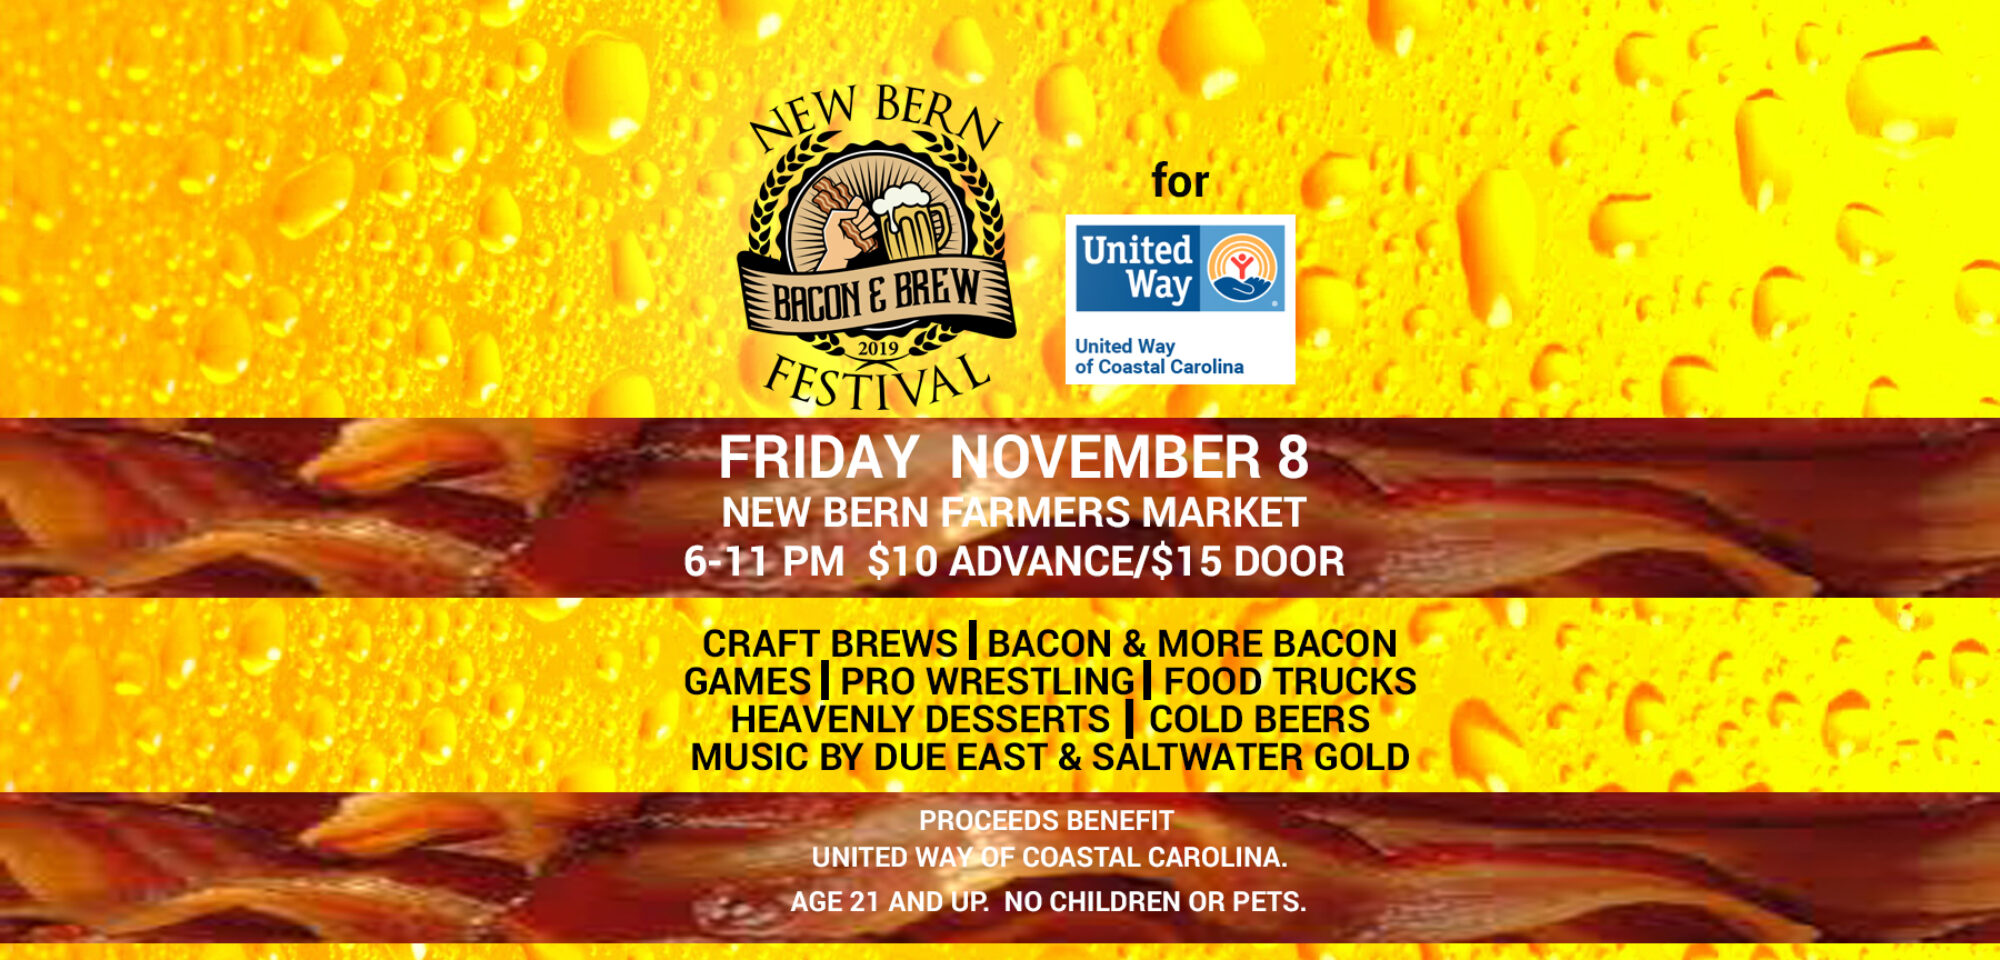 Bacon and Brew Festival New Bern NC